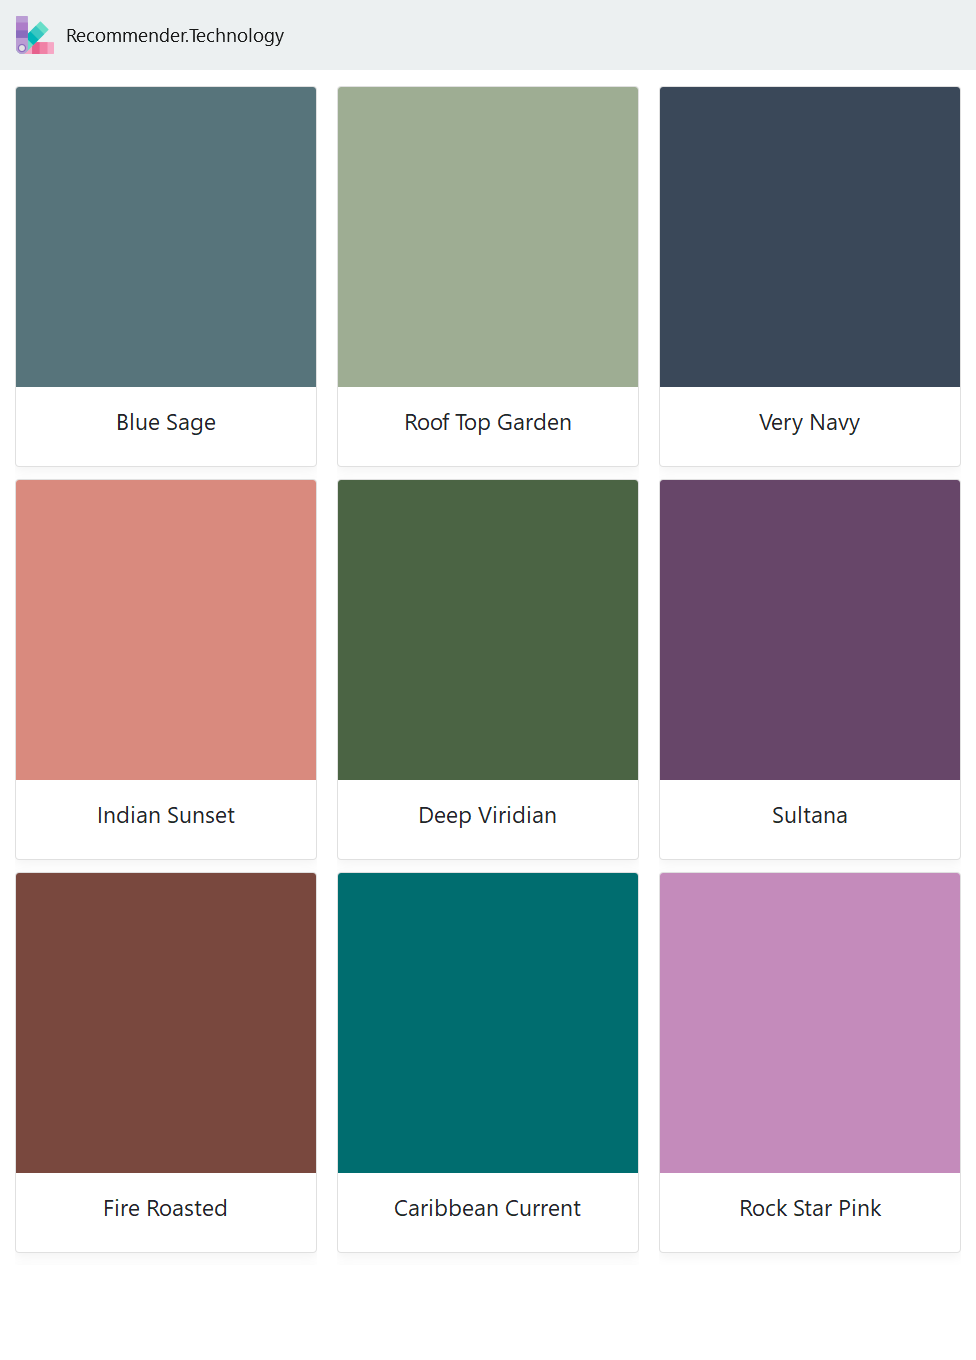 Blue Sage Indian Sunset Fire Roasted Roof Top Garden Deep Viridian Caribbean Current Very Navy Sultan Behr Paint Colors Paint Color Palettes Behr Colors